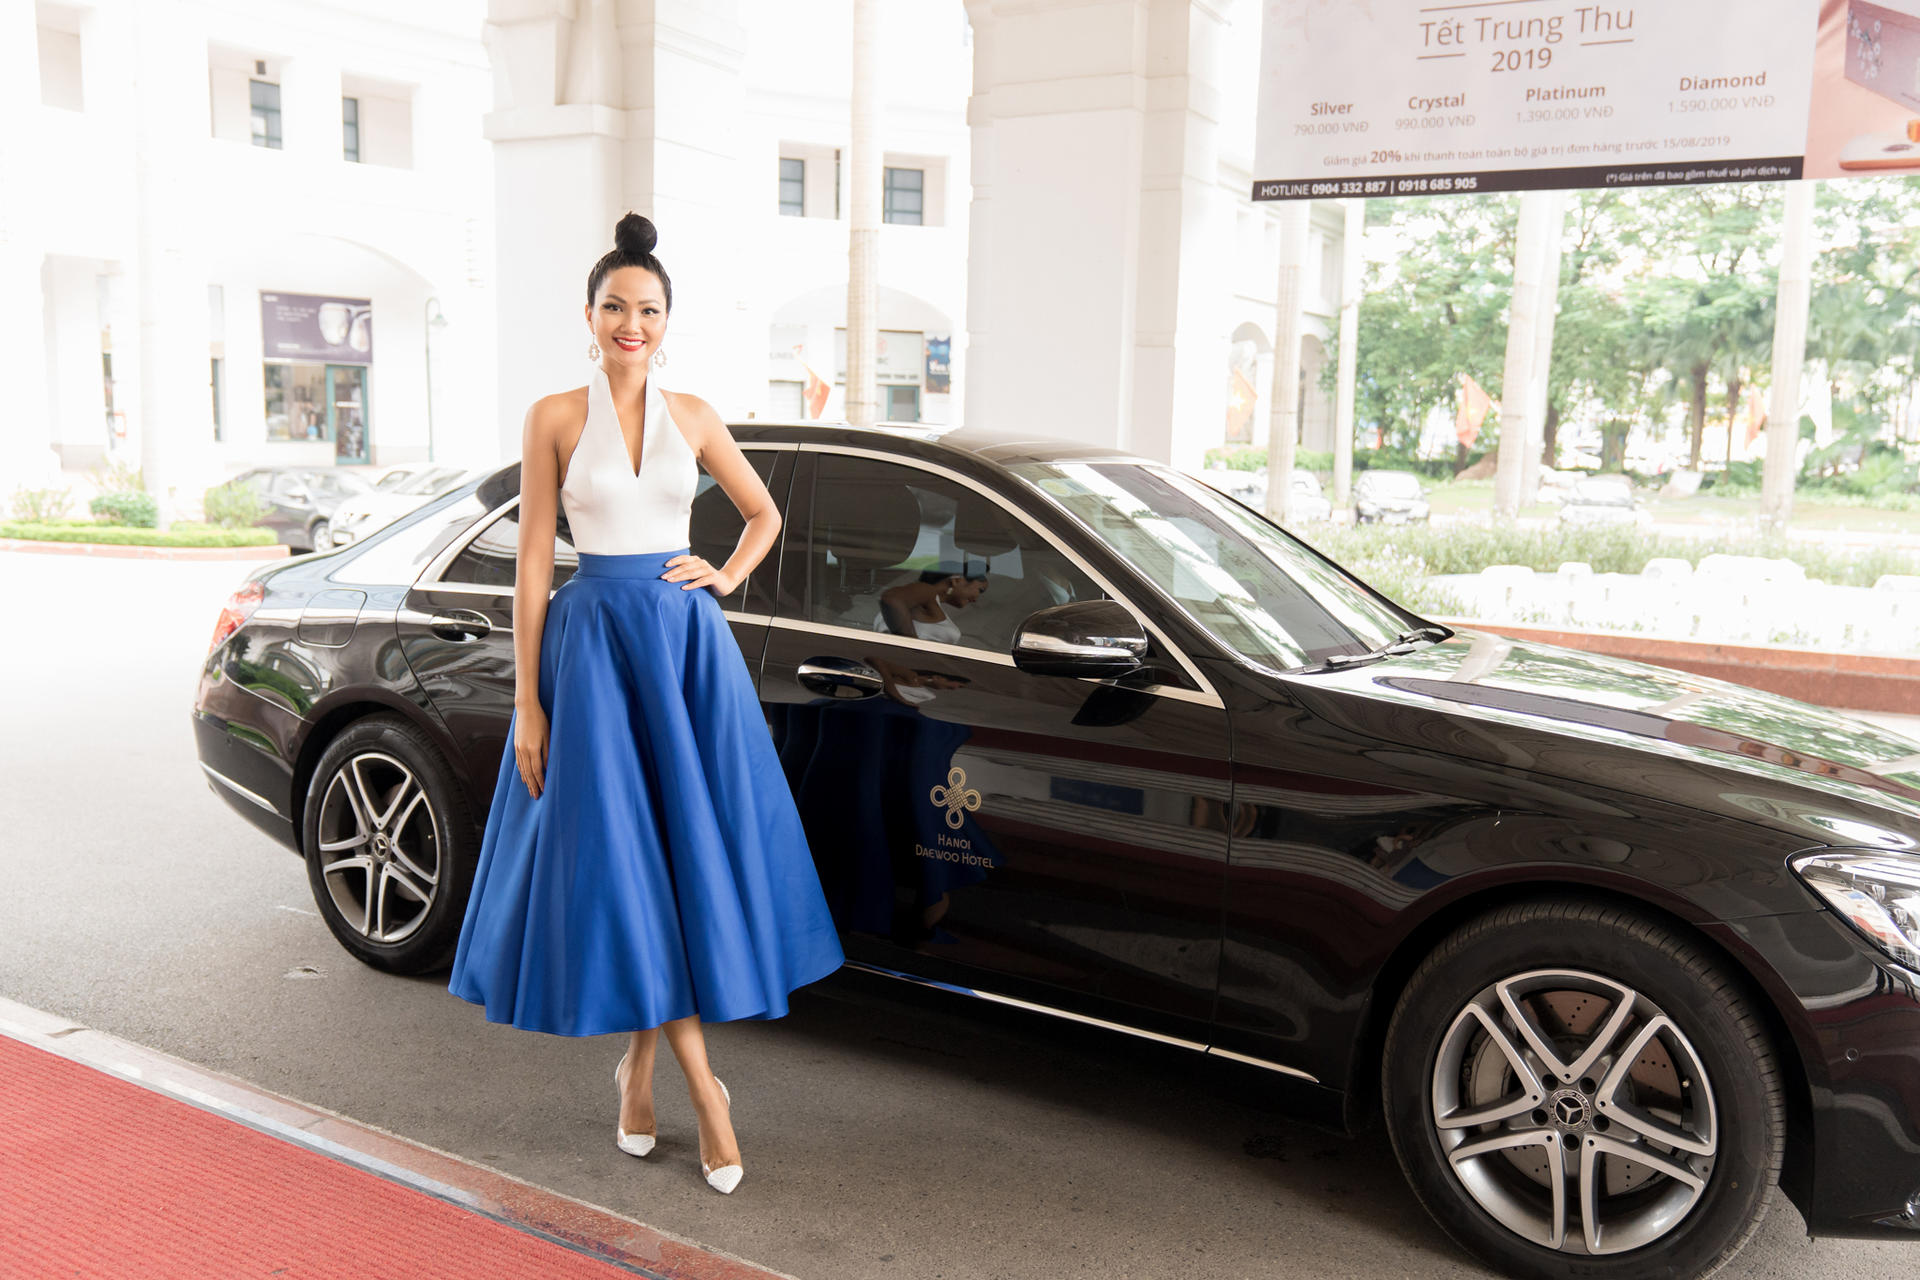 Model posing with a car at entrance of Hanoi Daewoo Hotel